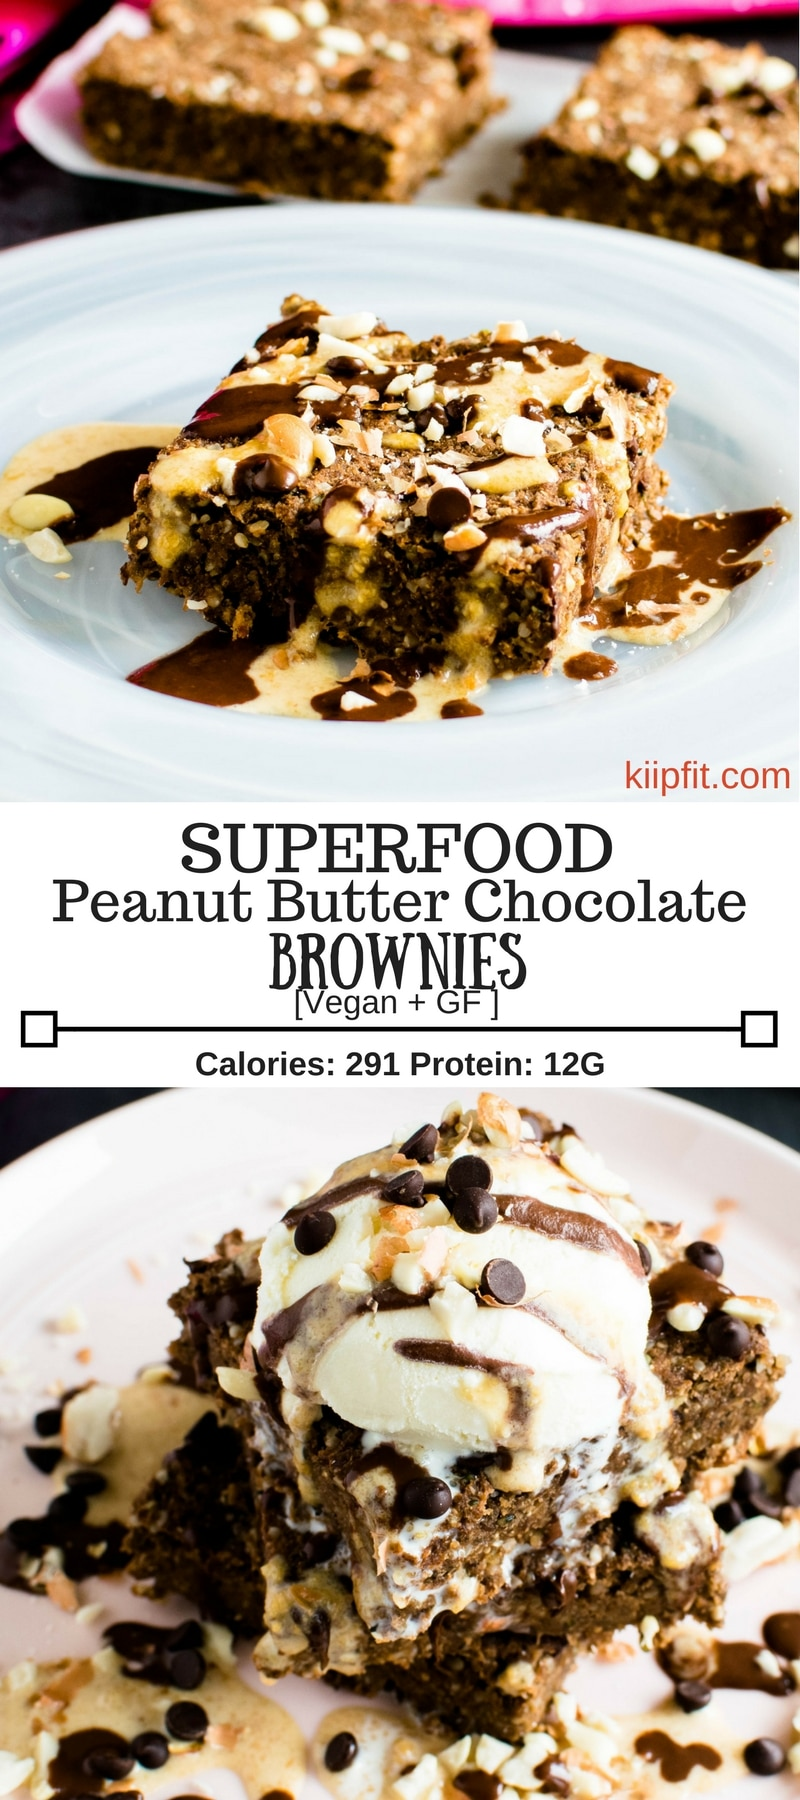 Superfood Peanut Butter Chocolate Brownies is healthy and chewy with a subtle flavor of peanut butter and chocolate. It's made of all the possible healthy ingredients. These delectable brownies are vegan and gluten free | kiipfit.com